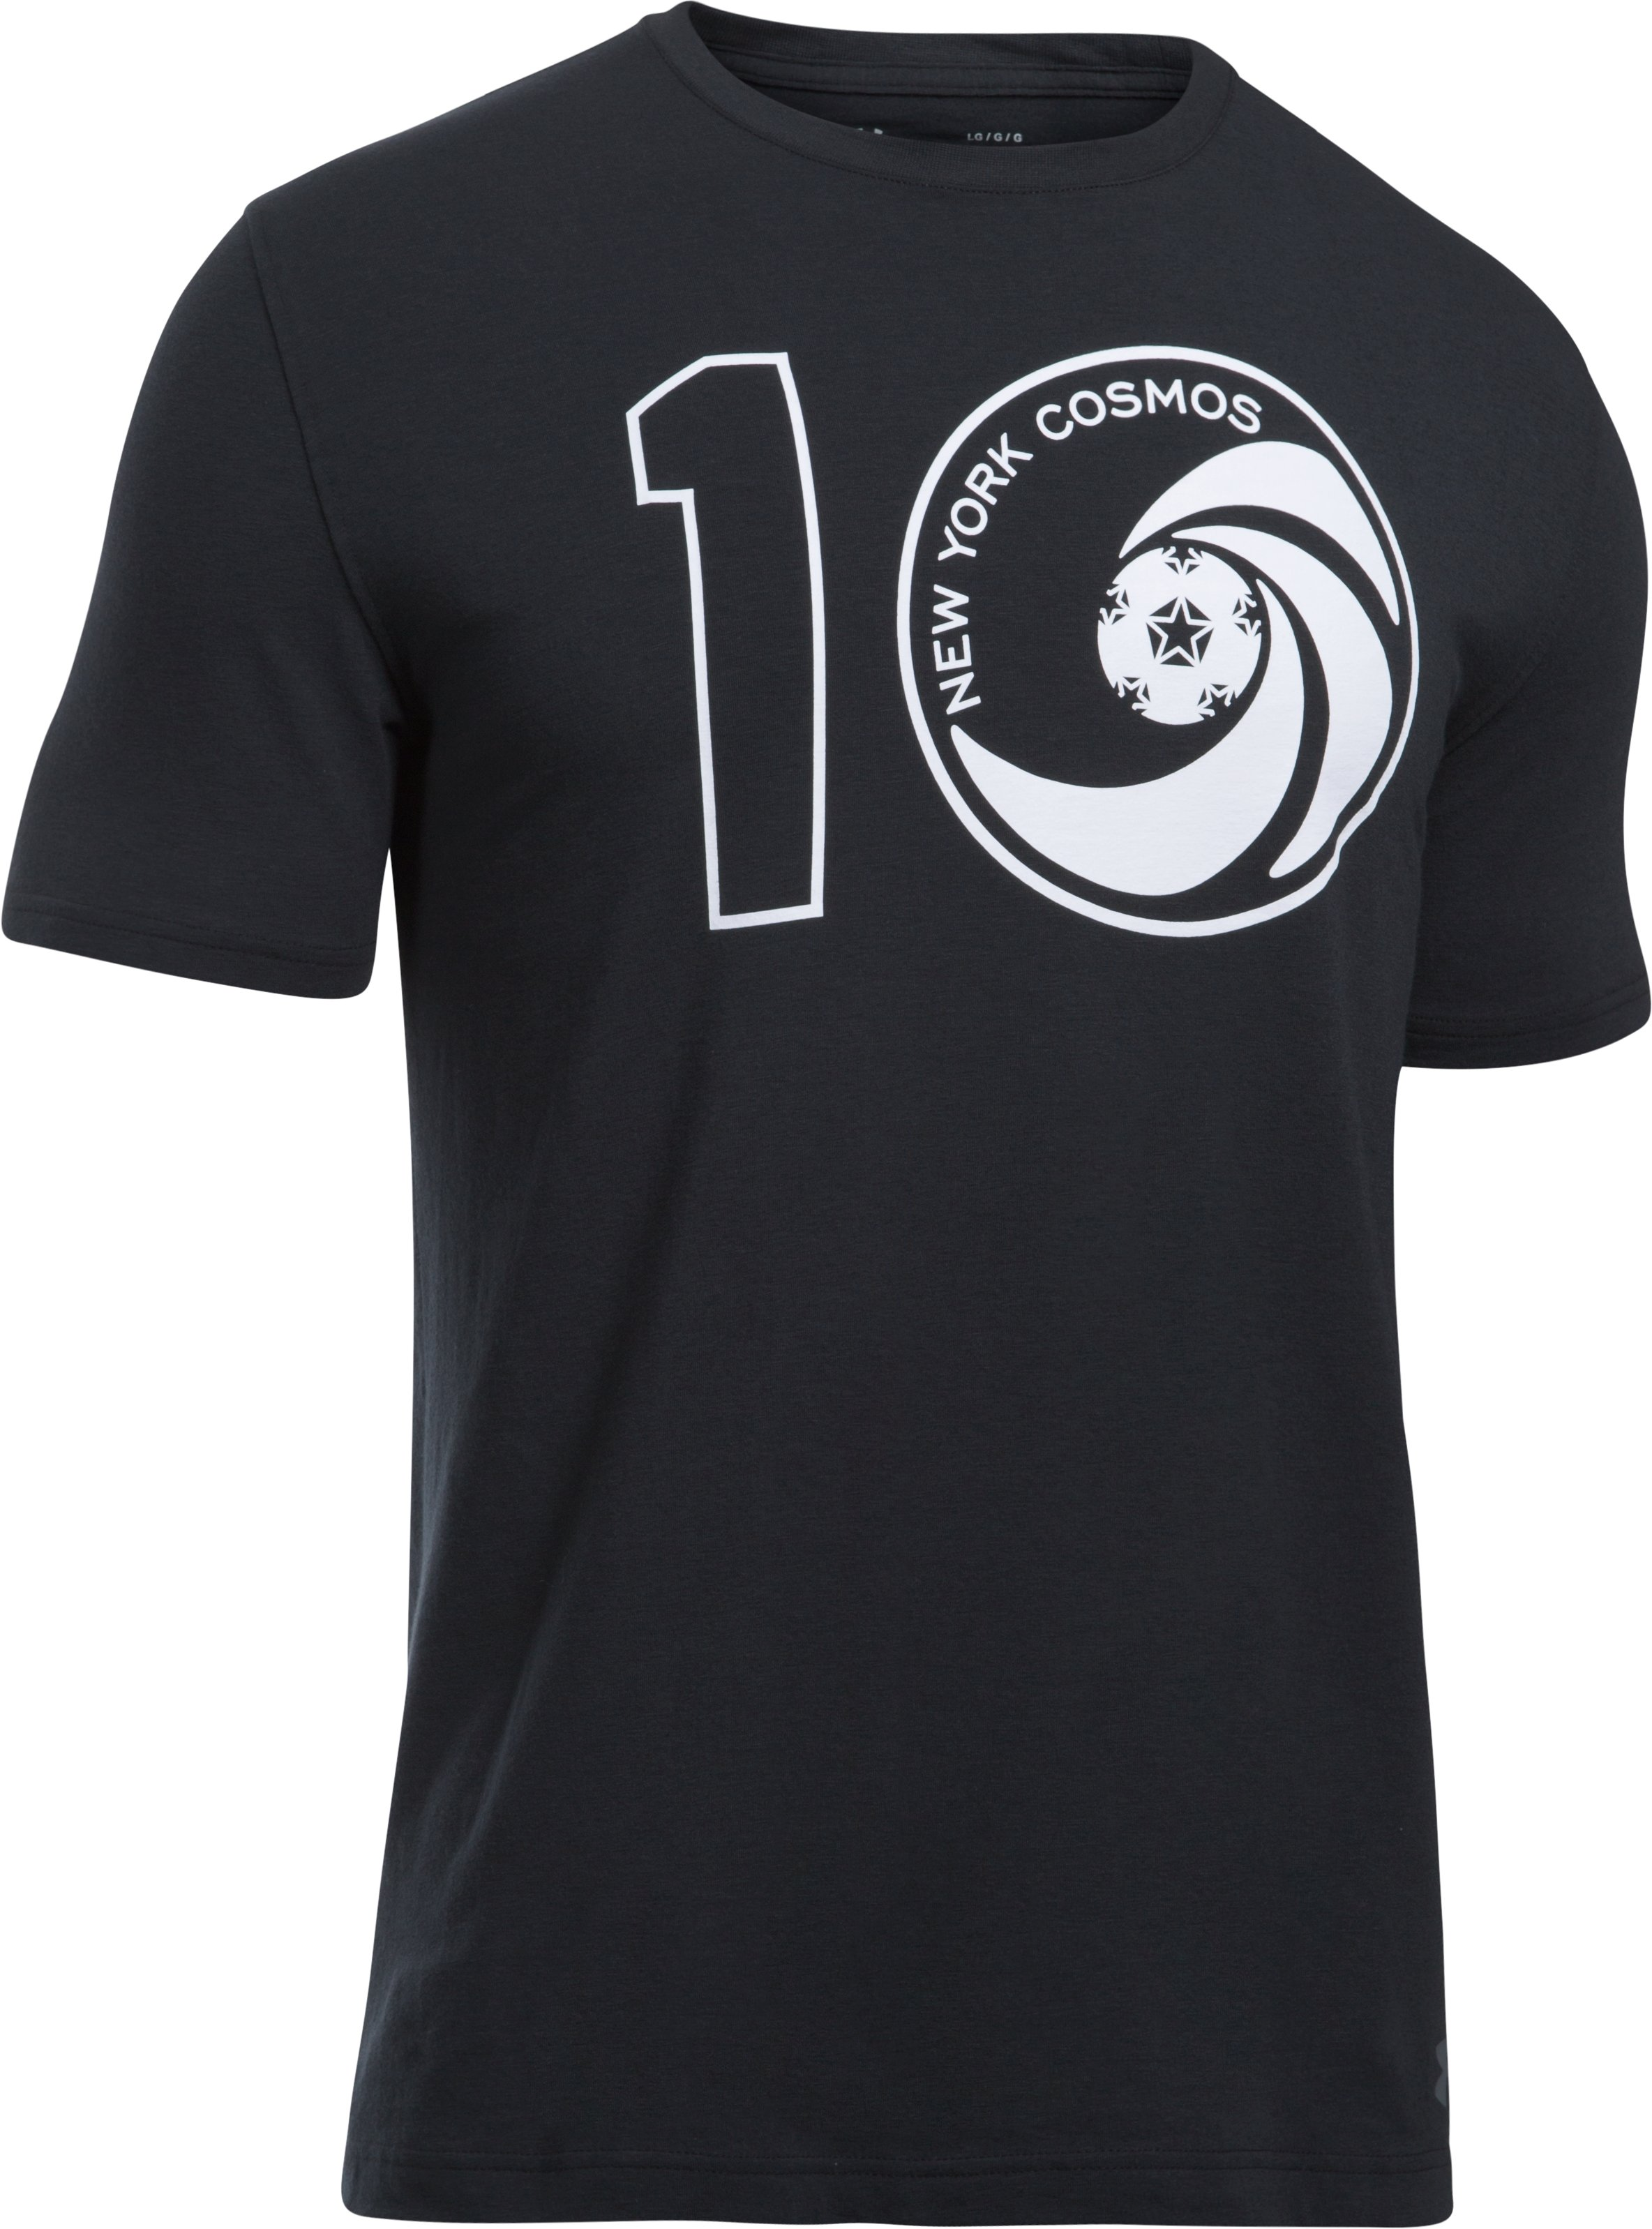 Men's UA Pele Cosmos T-Shirt, Black ,